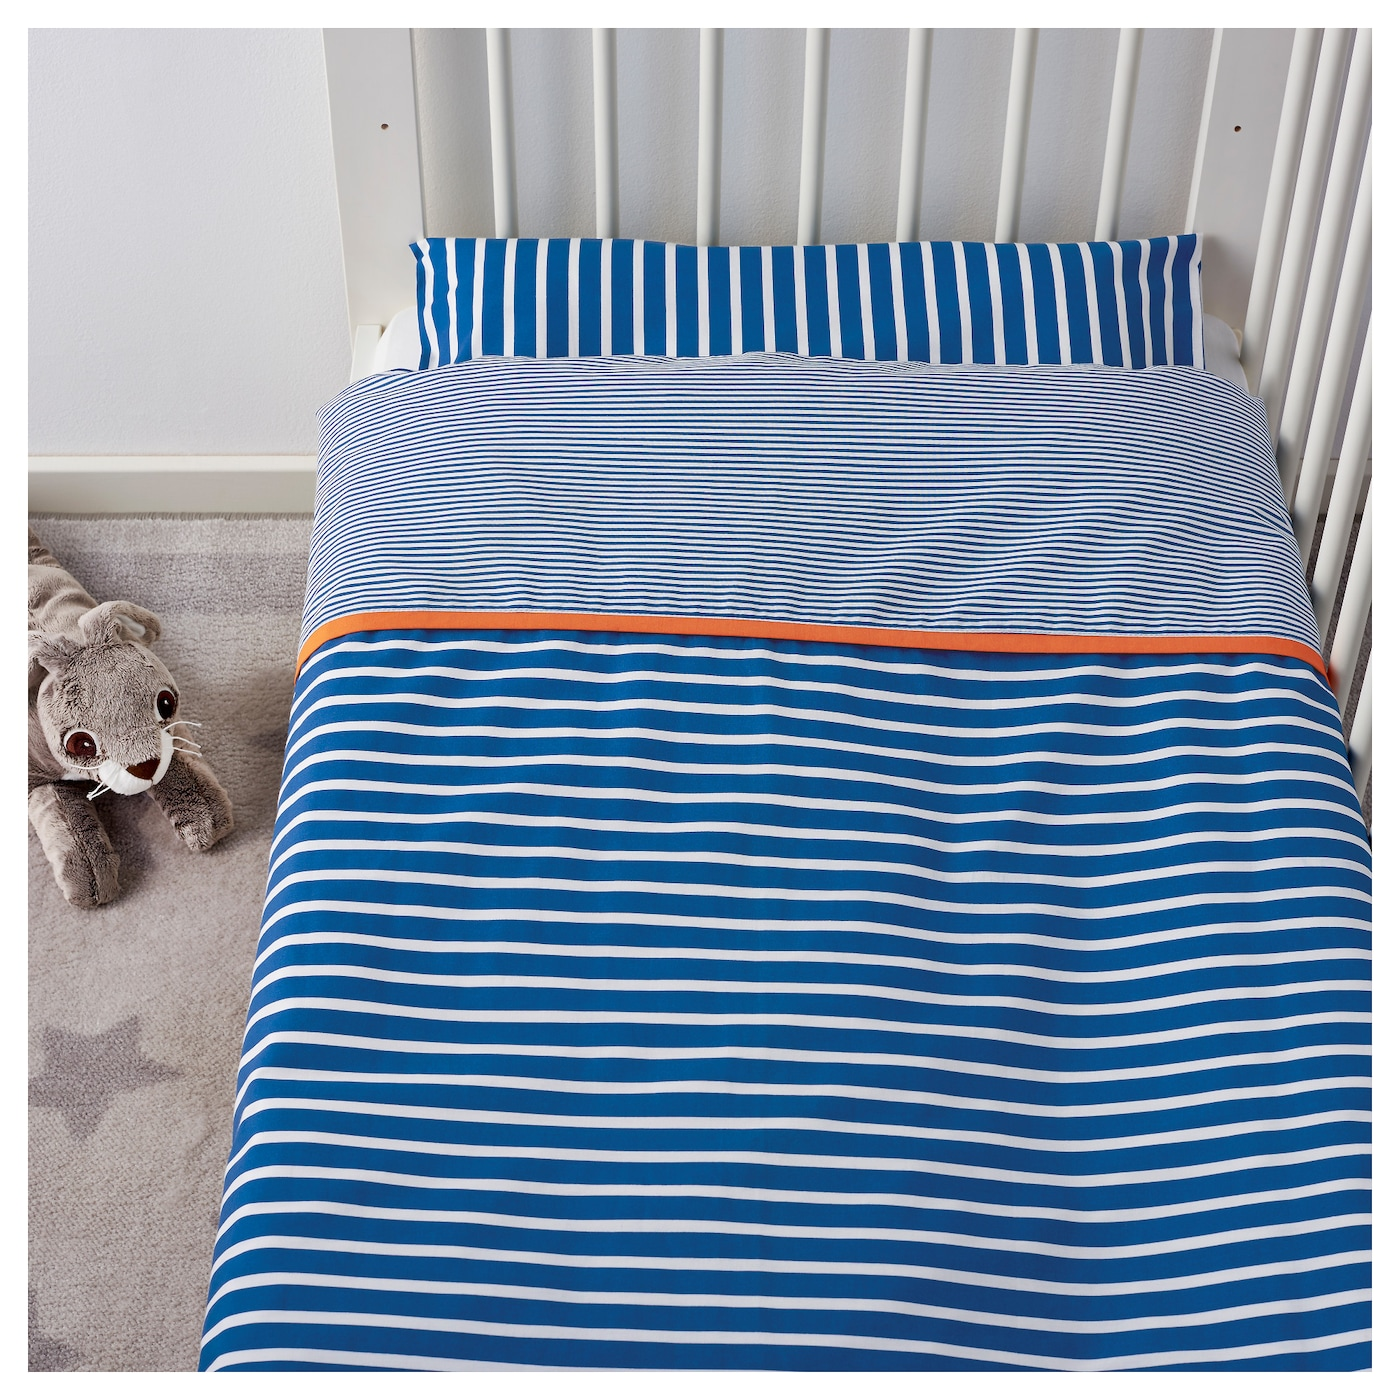 IKEA SKÄMTSAM quilt cover/pillowcase for cot